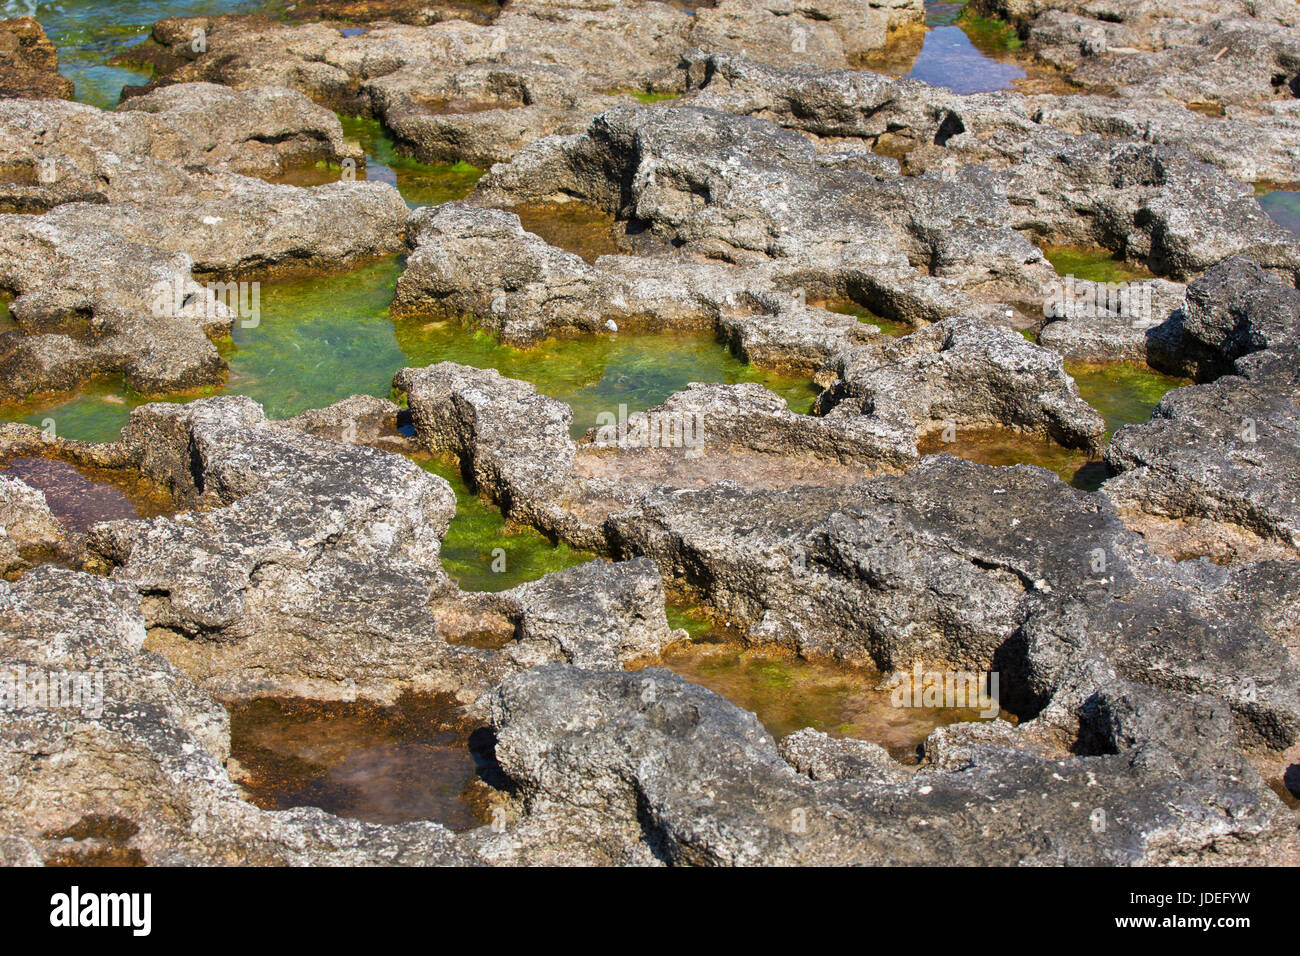 Moss in the puddle around the jagged rocks near the sea - Stock Image